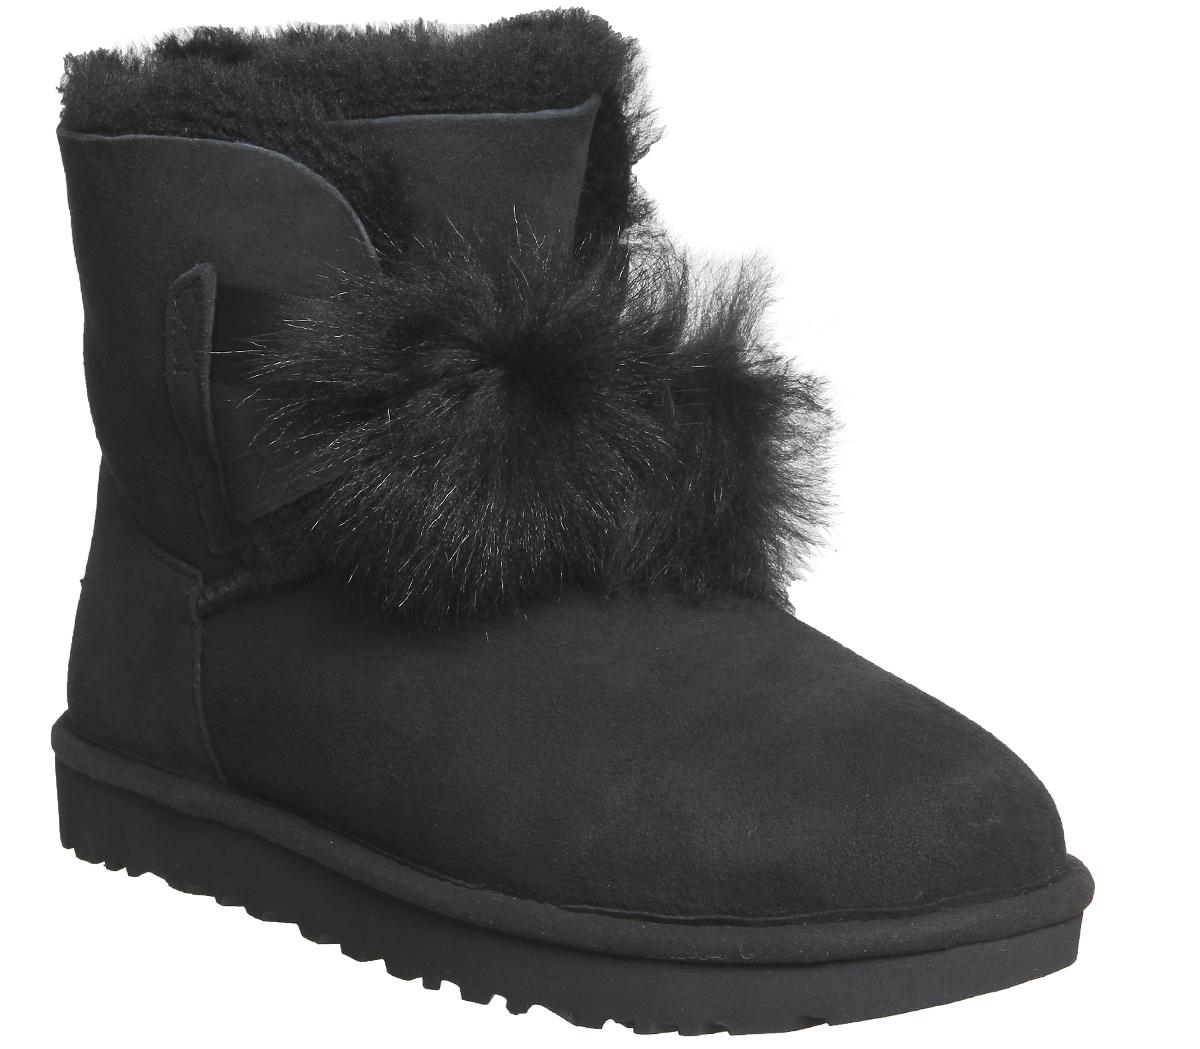 2279427252d Leather Ugg Boots With Pom Poms | MIT Hillel